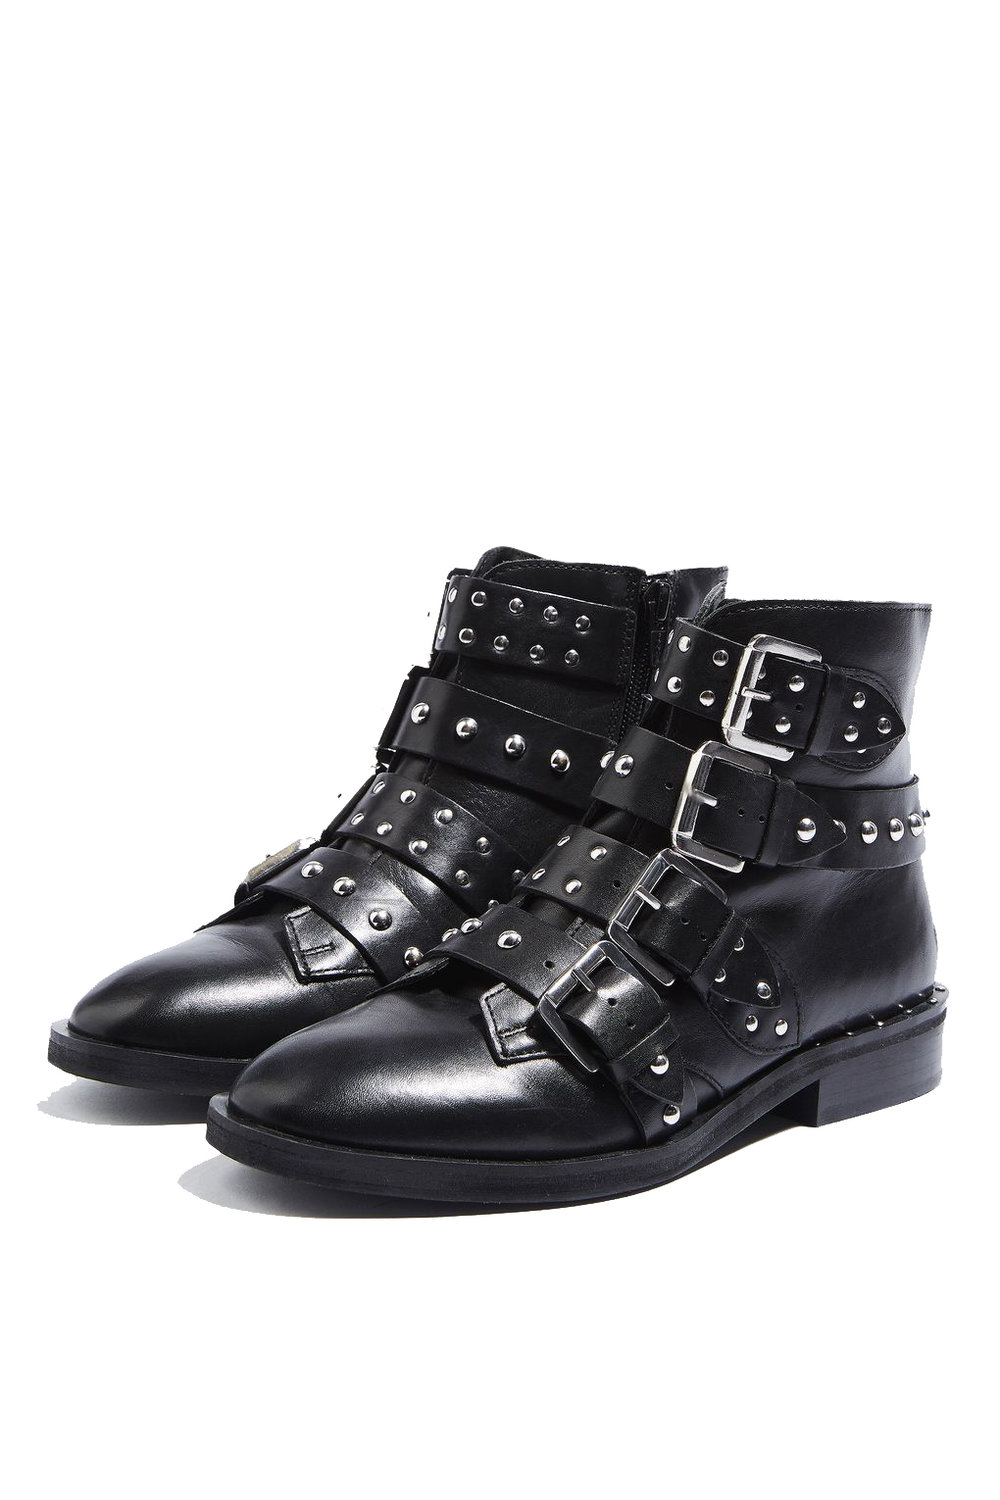 TOPSHOP Buckle Booties - $160